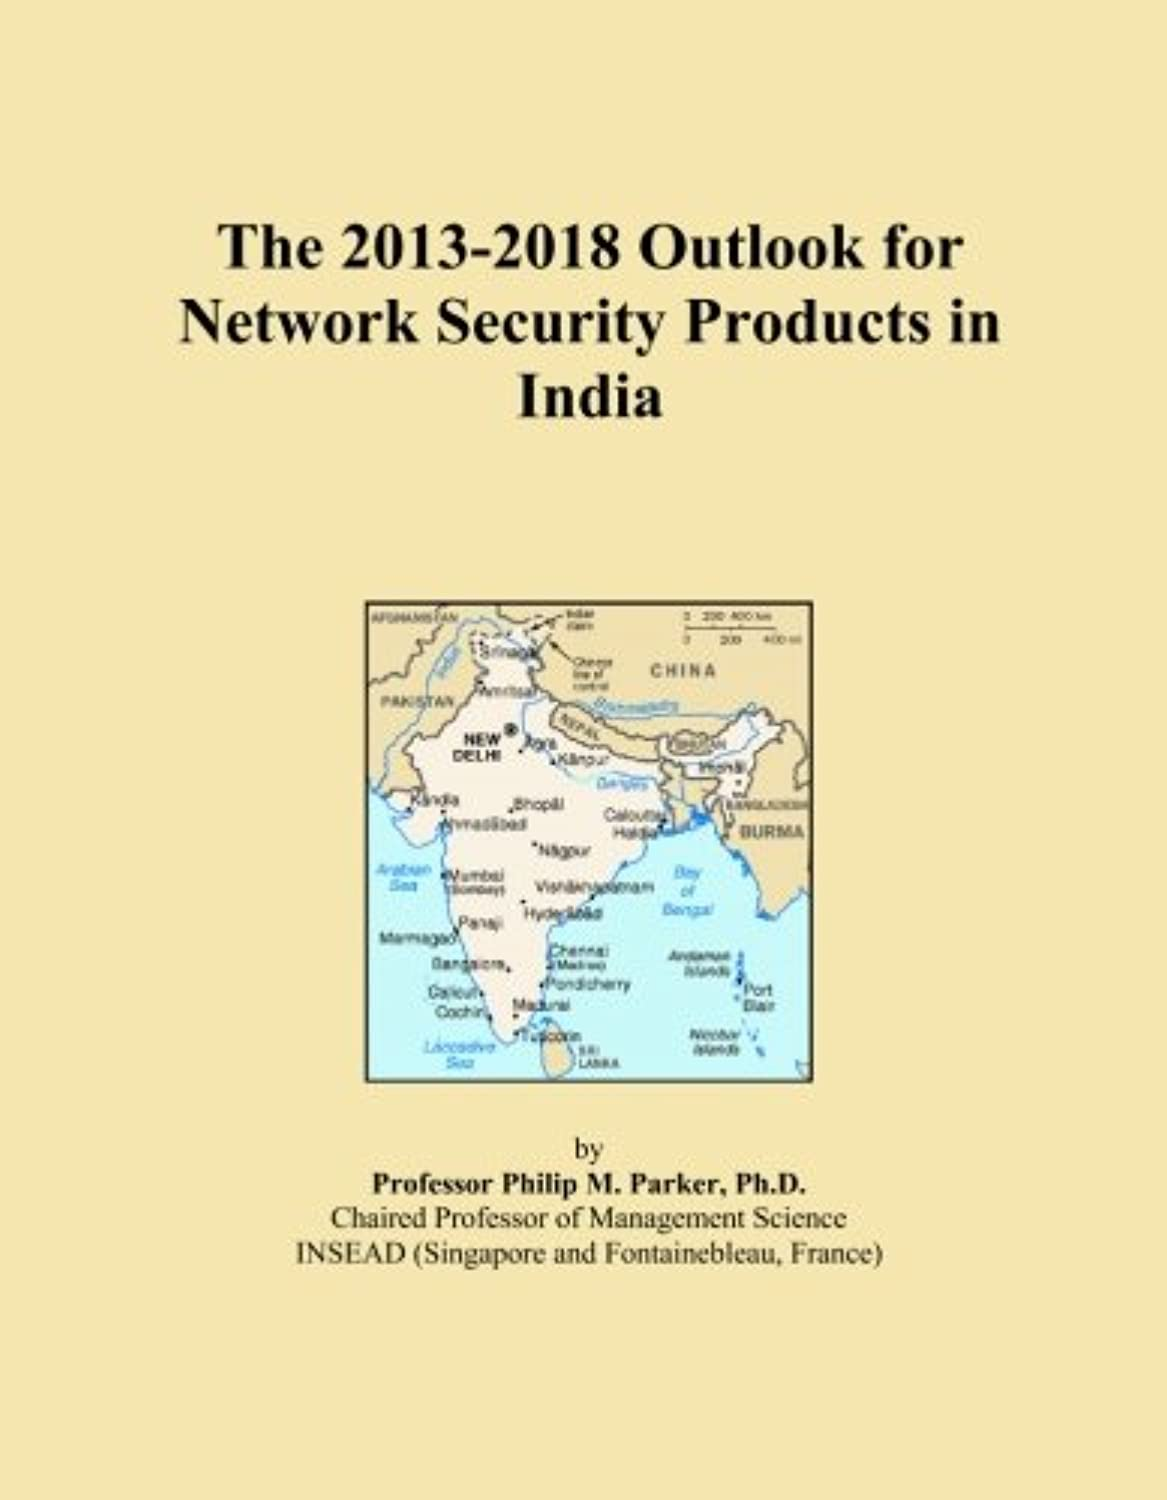 The 2013-2018 Outlook for Network Security Products in India